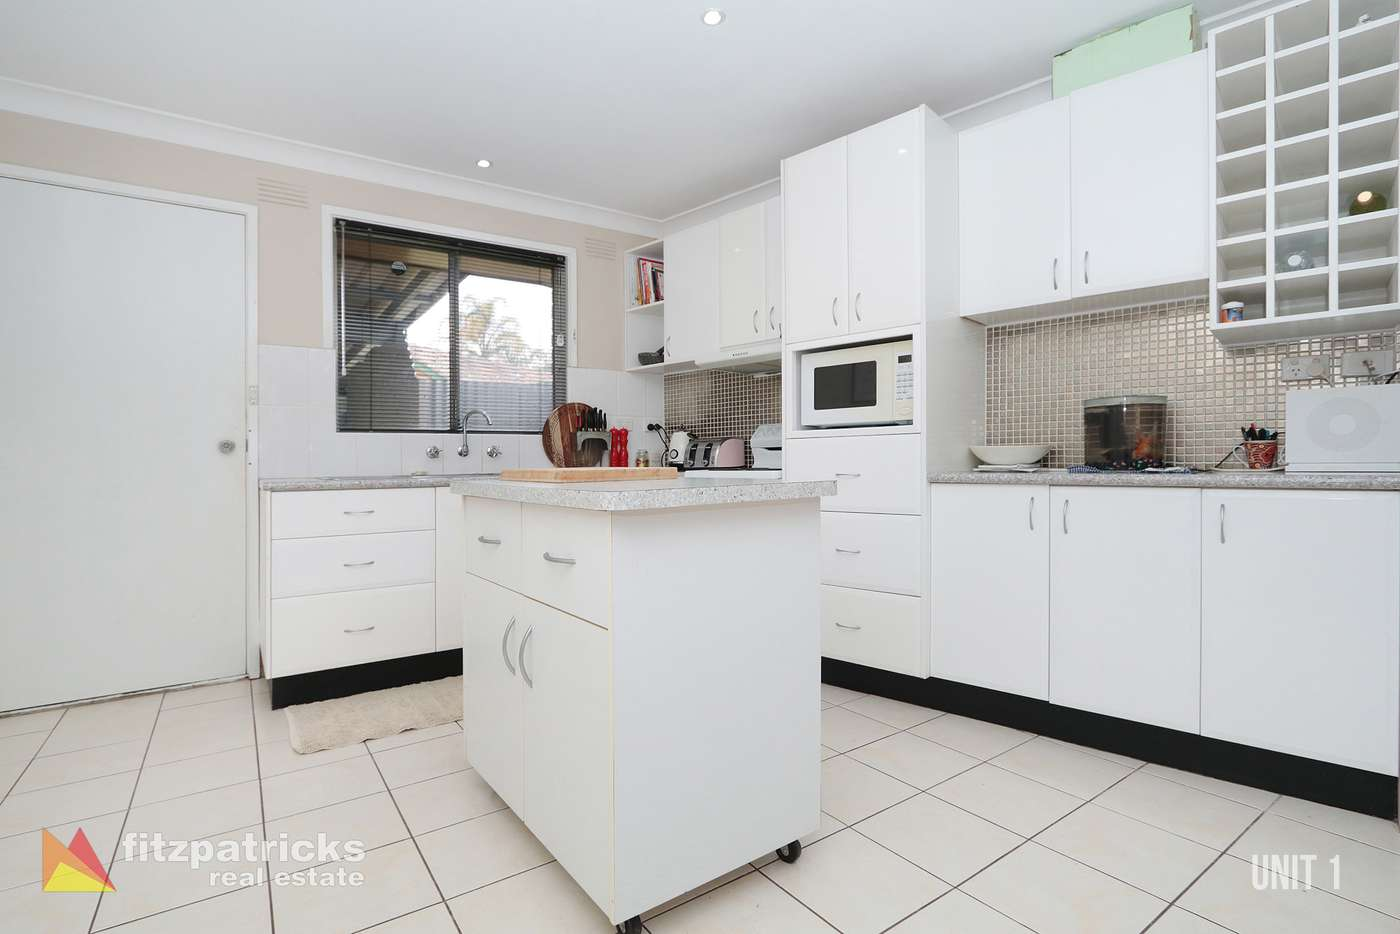 Fifth view of Homely house listing, 8 Ries Crescent, Tolland NSW 2650